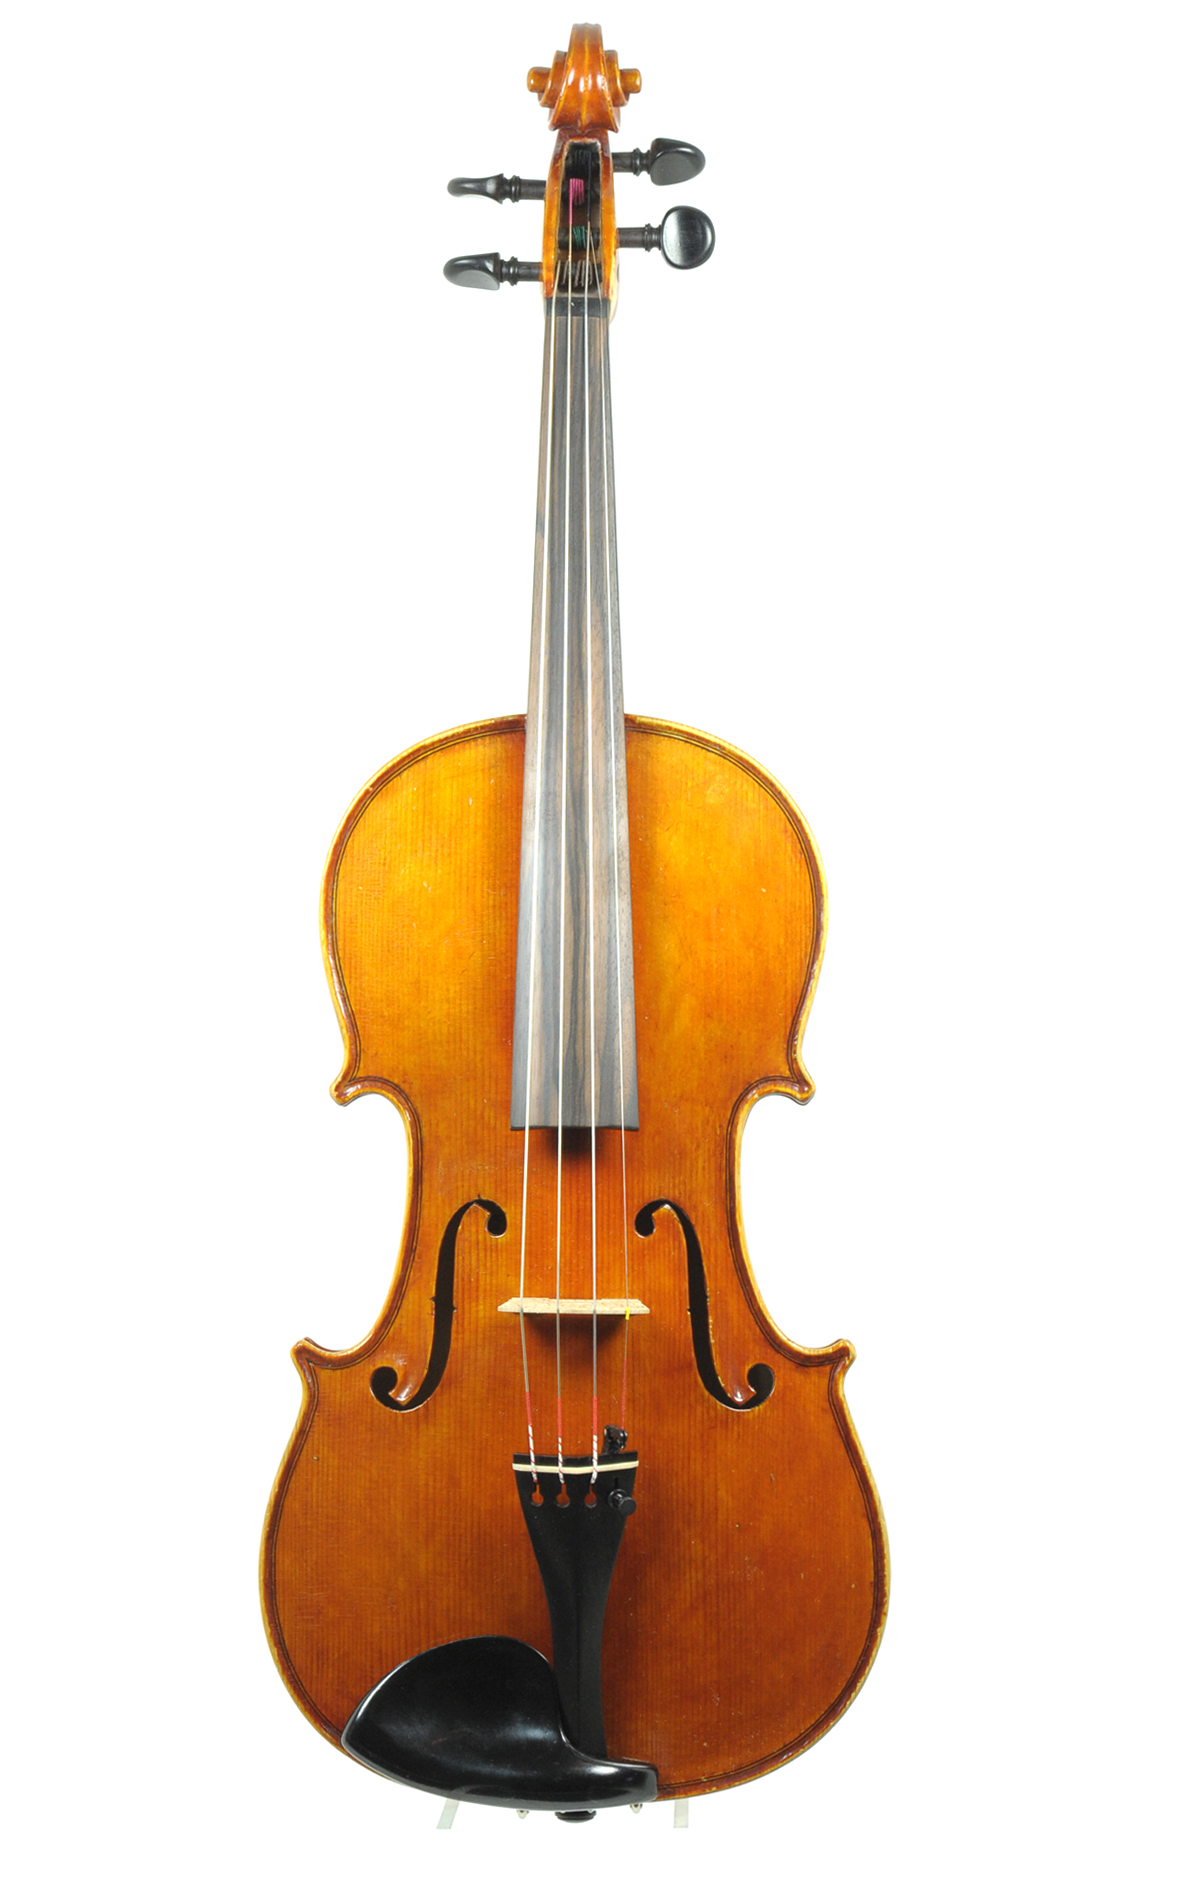 Is Your Instrument Modern or Old (or Fake Old) by Violin Standards